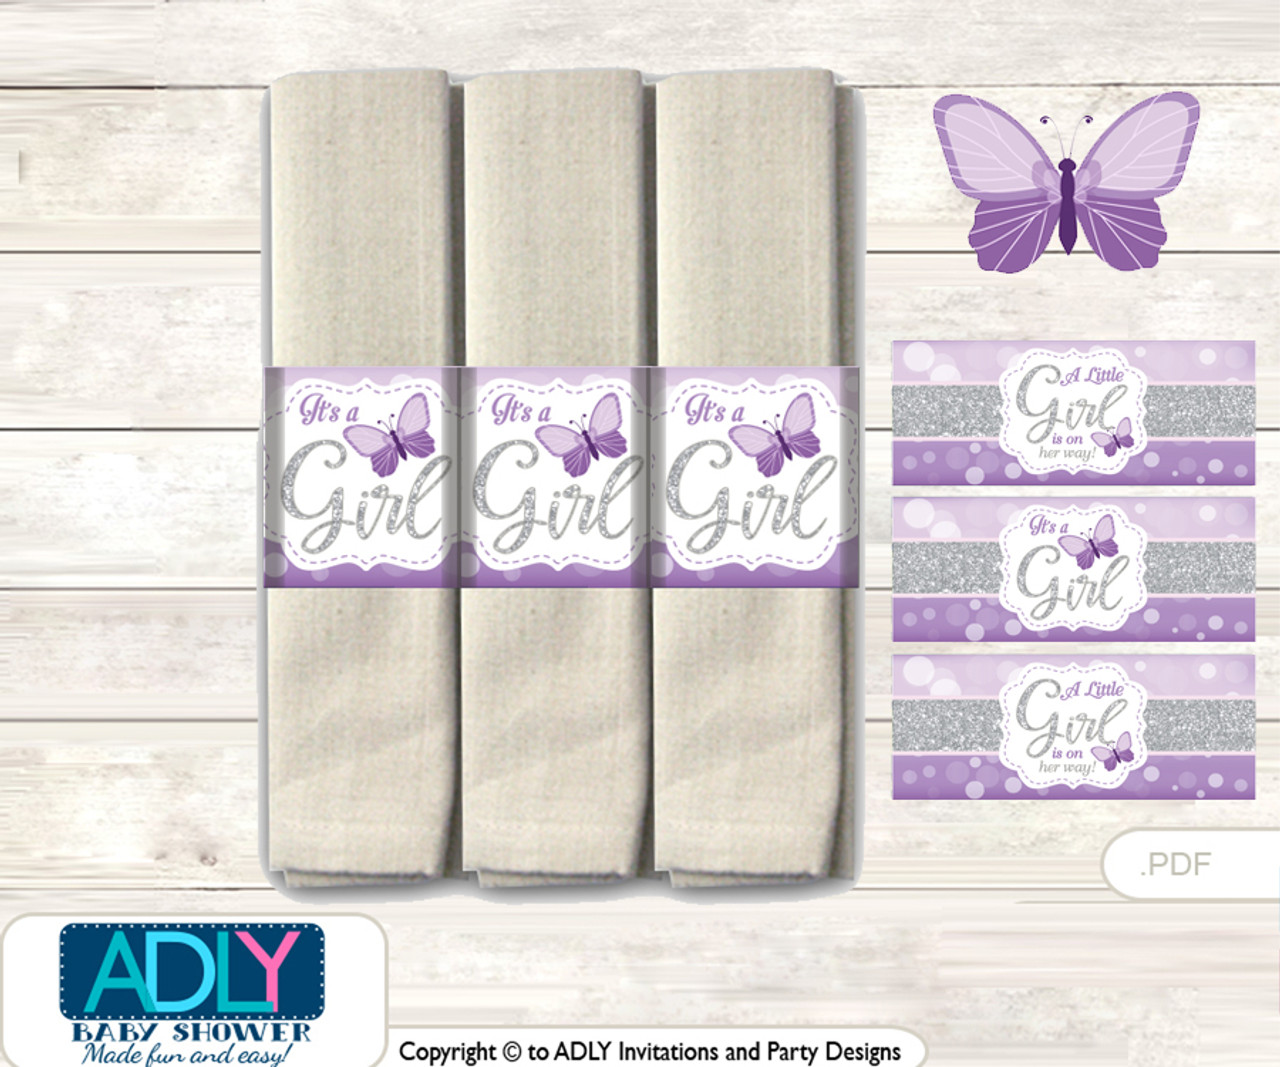 Printable Purple Butterfly Napkin Ring Label Or Napkin Holders For Baby Shower Gray Bokeh Adly Invitations And Digital Party Designs